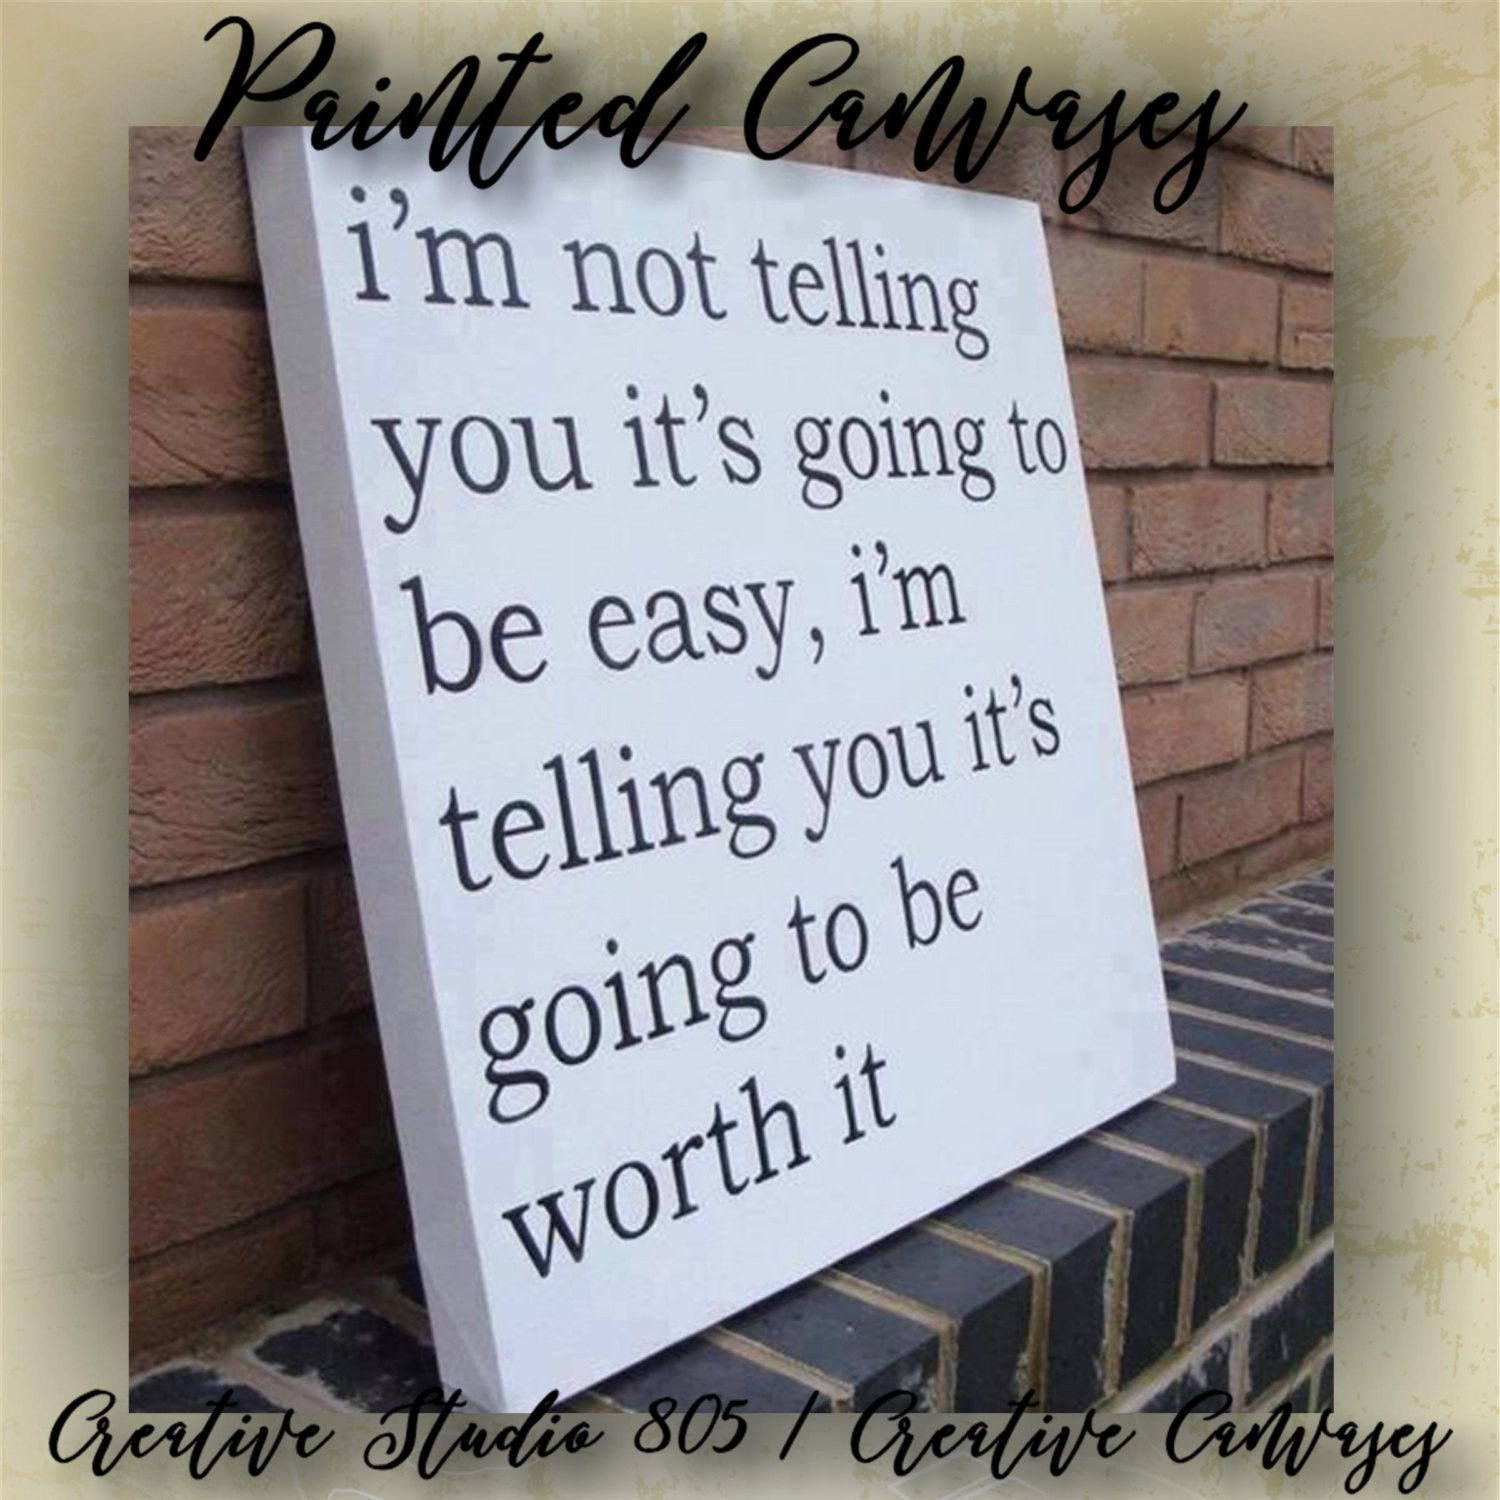 Worth it decorated canvas wall hanging wall decor inspiring